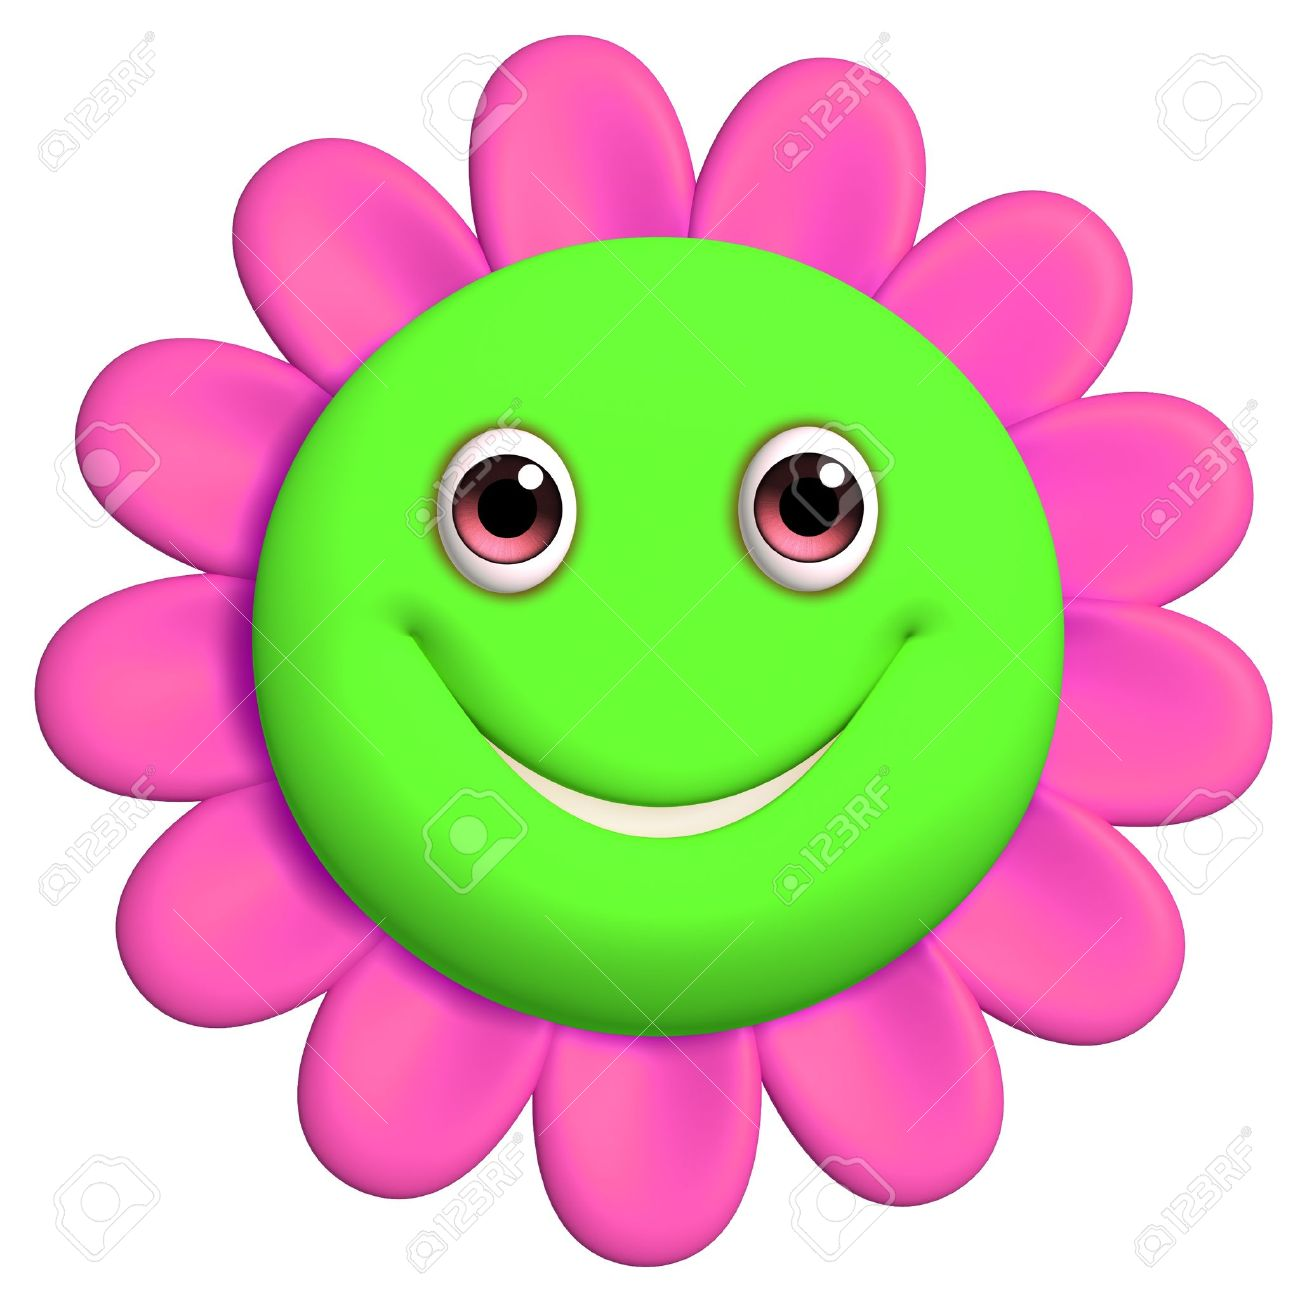 Smiley clipart flower Flower Smiley Face Face Clipartion